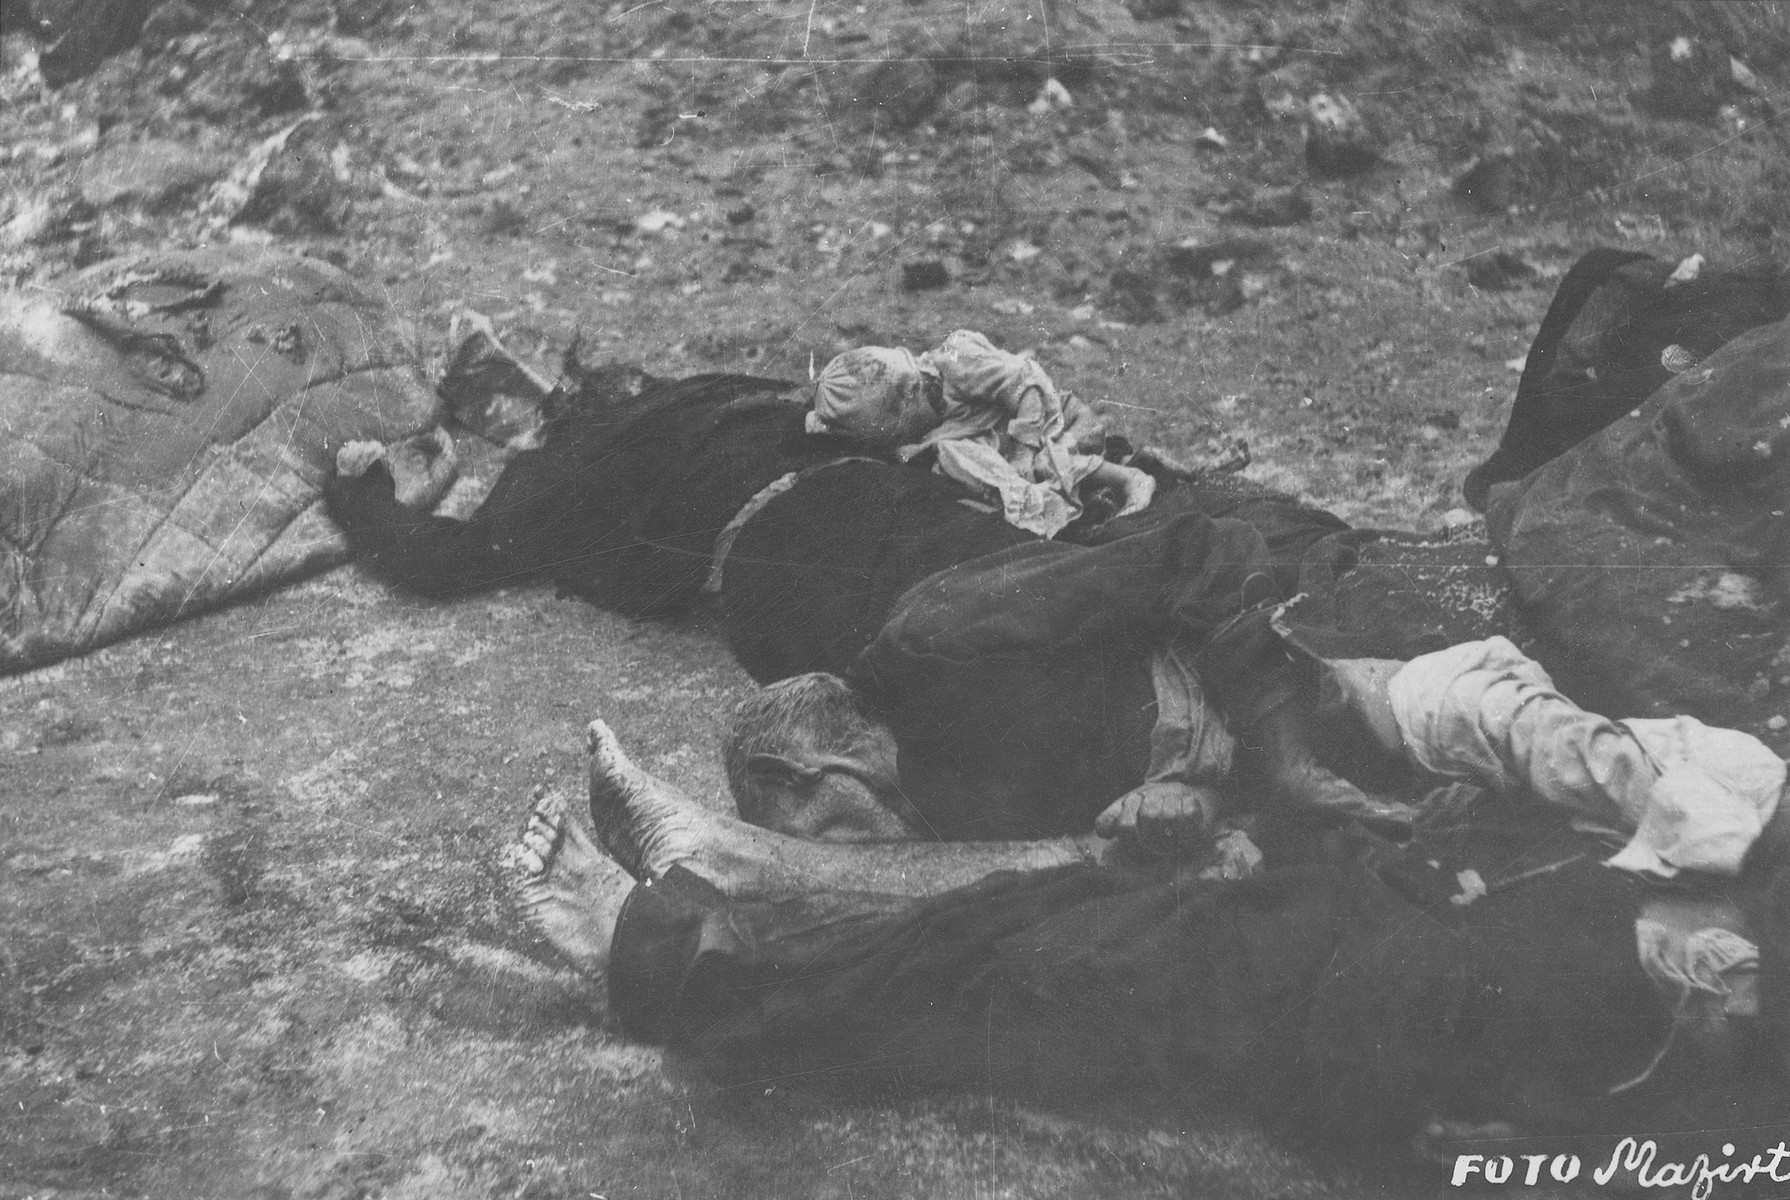 Corpses of Jews in the courtyard of the Dohany Street Synagogue.  During the last few months of the war in Hungary, the Nyilas (Arrow Cross) exploited the anarchic conditions in the areas still under their control to continue their excesses against the Jews.  This was particularly true in Budapest, despite the fact that the Soviet army had completely encircled the city by December 27, 1944.  The reign of terror that had begun with Szalaszi's assumption of power on October 15, 1944, went almost completely unchecked after the beginning of the Soviet siege on December 9.  Gangs of armed Nyilas--mostly teenagers--roamed the city hunting for Jews in hiding.  They searched them out in hospitals, shelters, homes outside the ghetto, in the International Ghetto, and in the large ghetto.  After robbing the Jews of their remaining valuables, the Nyilas shot them on the spot or marched them to the banks of the Danube, where they shot them, and threw their bodies into the river.  A large number of Jews who were murdered in the ghetto were buried in mass graves in the courtyard of the Dohany Street Synagogue.  The most horrific of these attacks occurred on the Pest side of the capital, at the two Jewish hospitals located on Maros and Varosmajor streets.  The Maros Street hospital, which had operated under the protection of the International Red Cross during the German occupation, was attacked on January 11, 1945.  After the initial melee, during which Nyilas gang members wantonly destroyed hospital equipment, threw patients out of their beds and trampled them, and murdered staff members, survivors were ordered to dig a mass grave, remove and bury the bodies.  They were then shot and buried in the grave themselves.  Only one nurse survived of the 92 people that were in the hospital at the time.  Three days later, on January 14, the hospital on Varosmajor Street was attacked, resulting in the deaths of 150 patients and medical staff.  These manhunts and massacres continued unabated